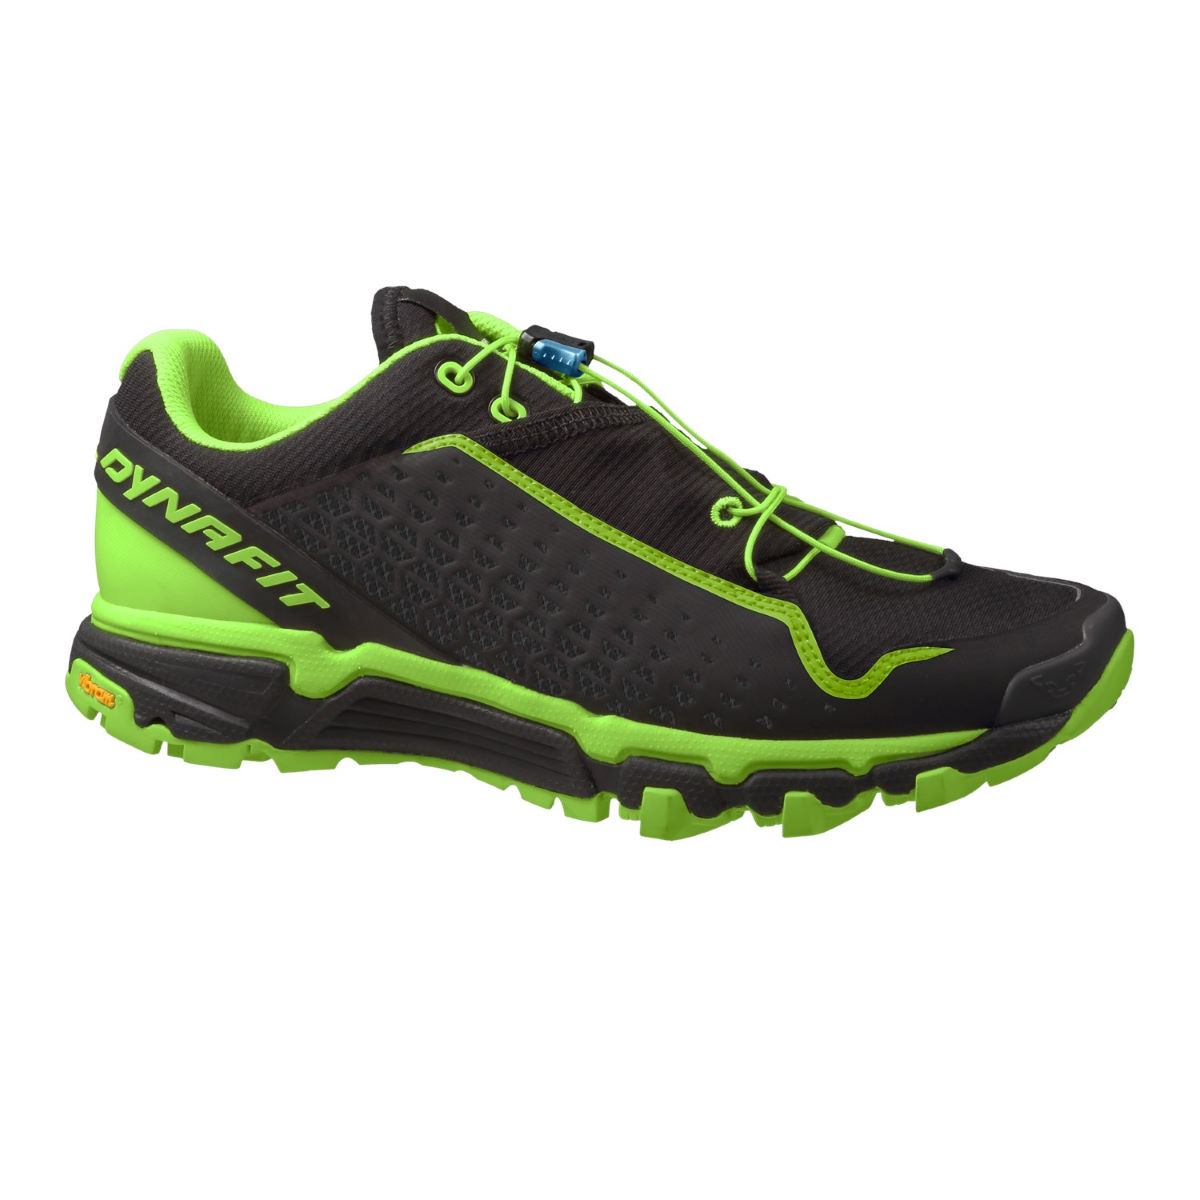 Dynafit Ultra Pro Shoes - Zapatillas de trail